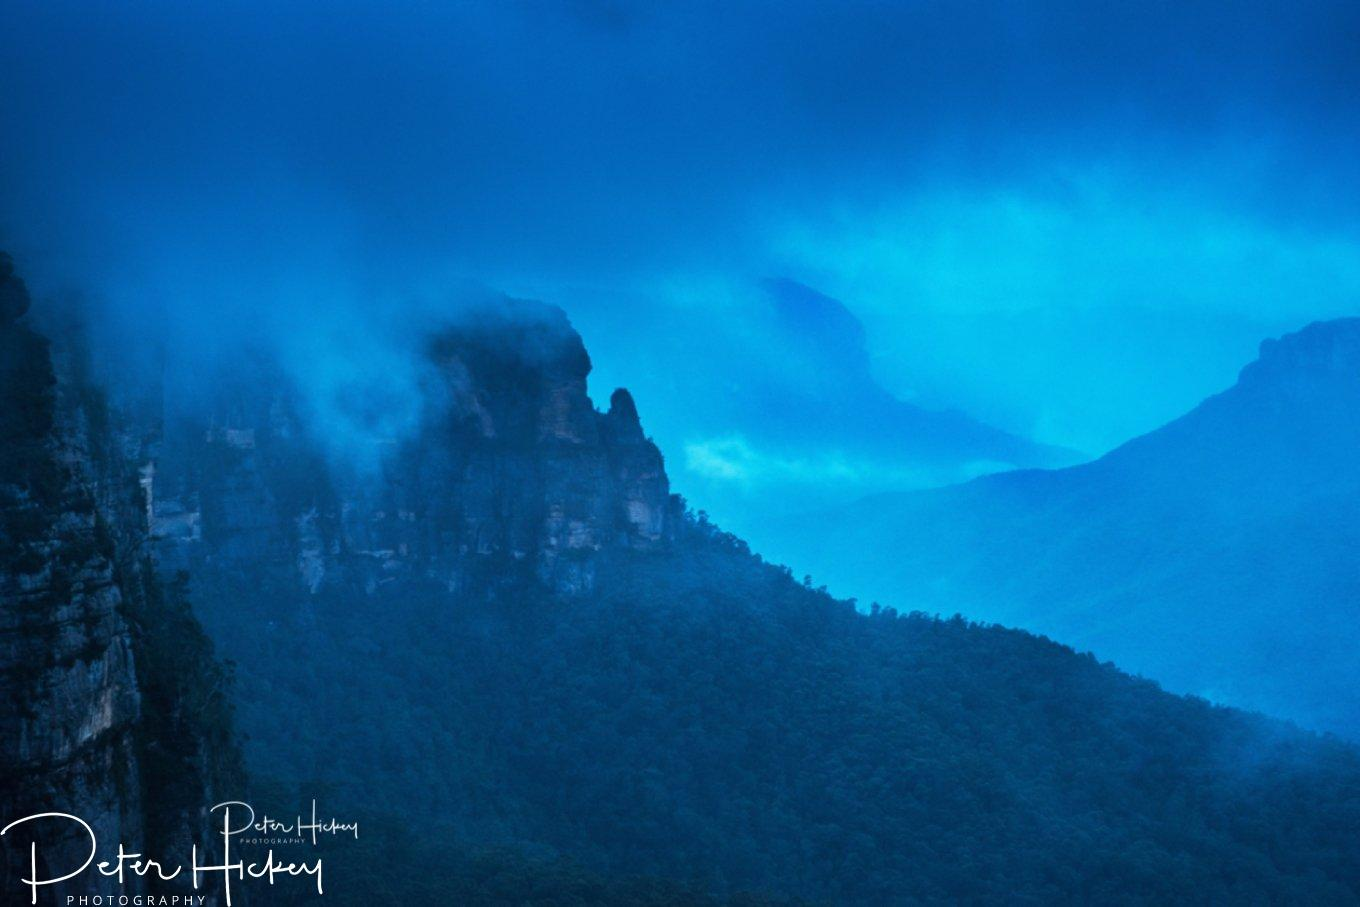 Captured during a storm in the Grose Valley